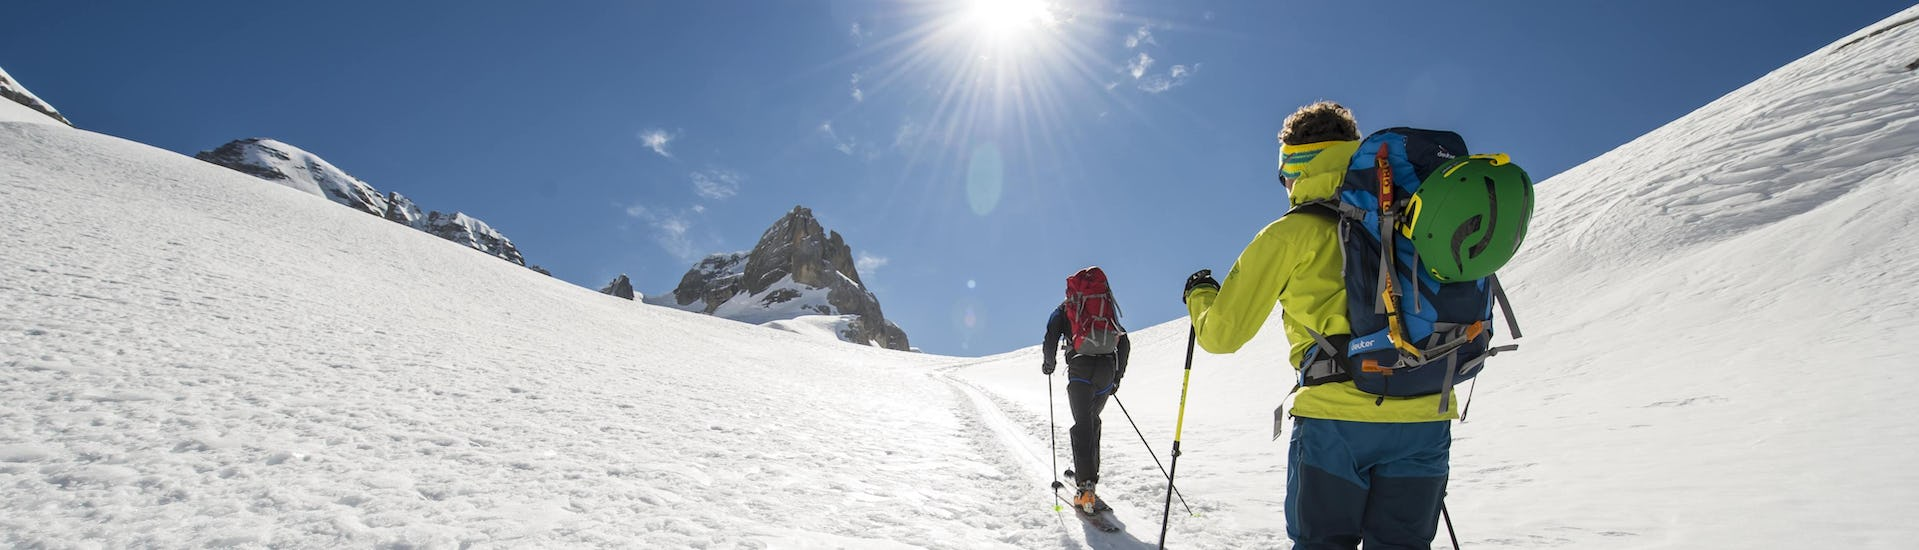 A ski touring guide is guiding another skier to the mountain summit while on a ski tour in the ski resort of Méribel.